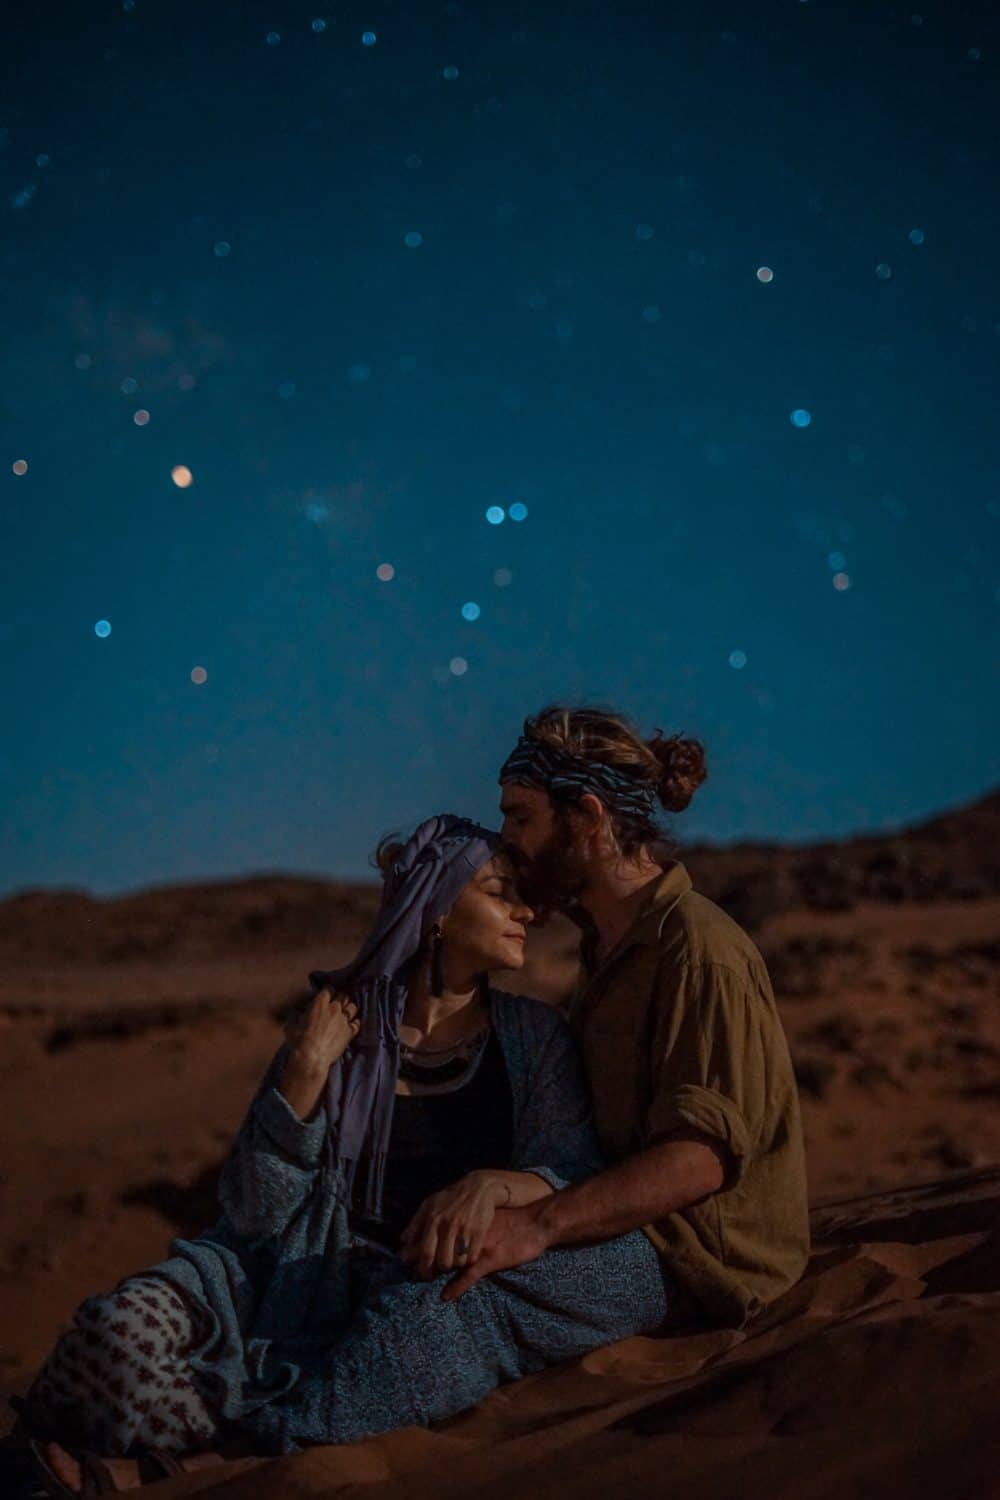 romantic date under the stars in the Moroccan desert